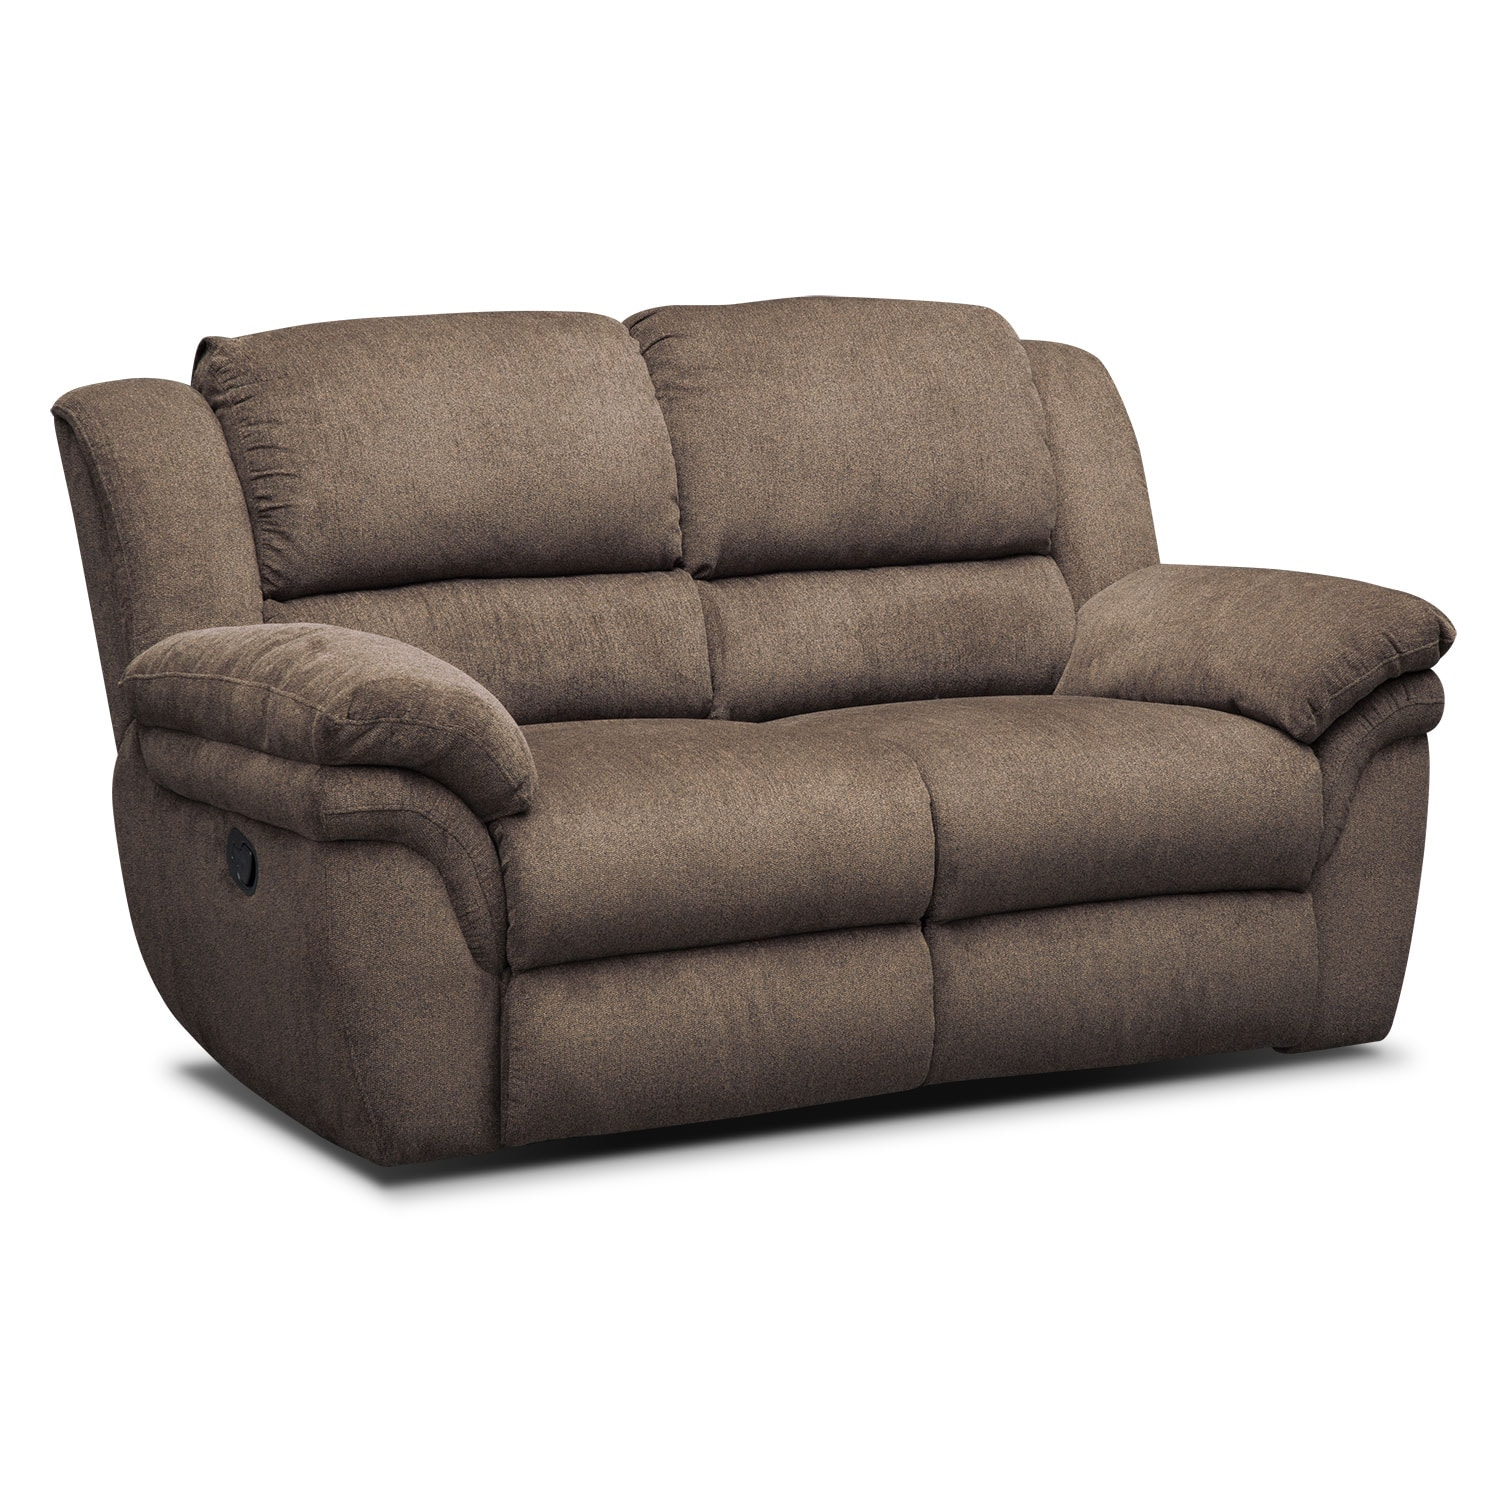 Aldo Manual Dual Reclining Sofa Loveseat And Recliner Set